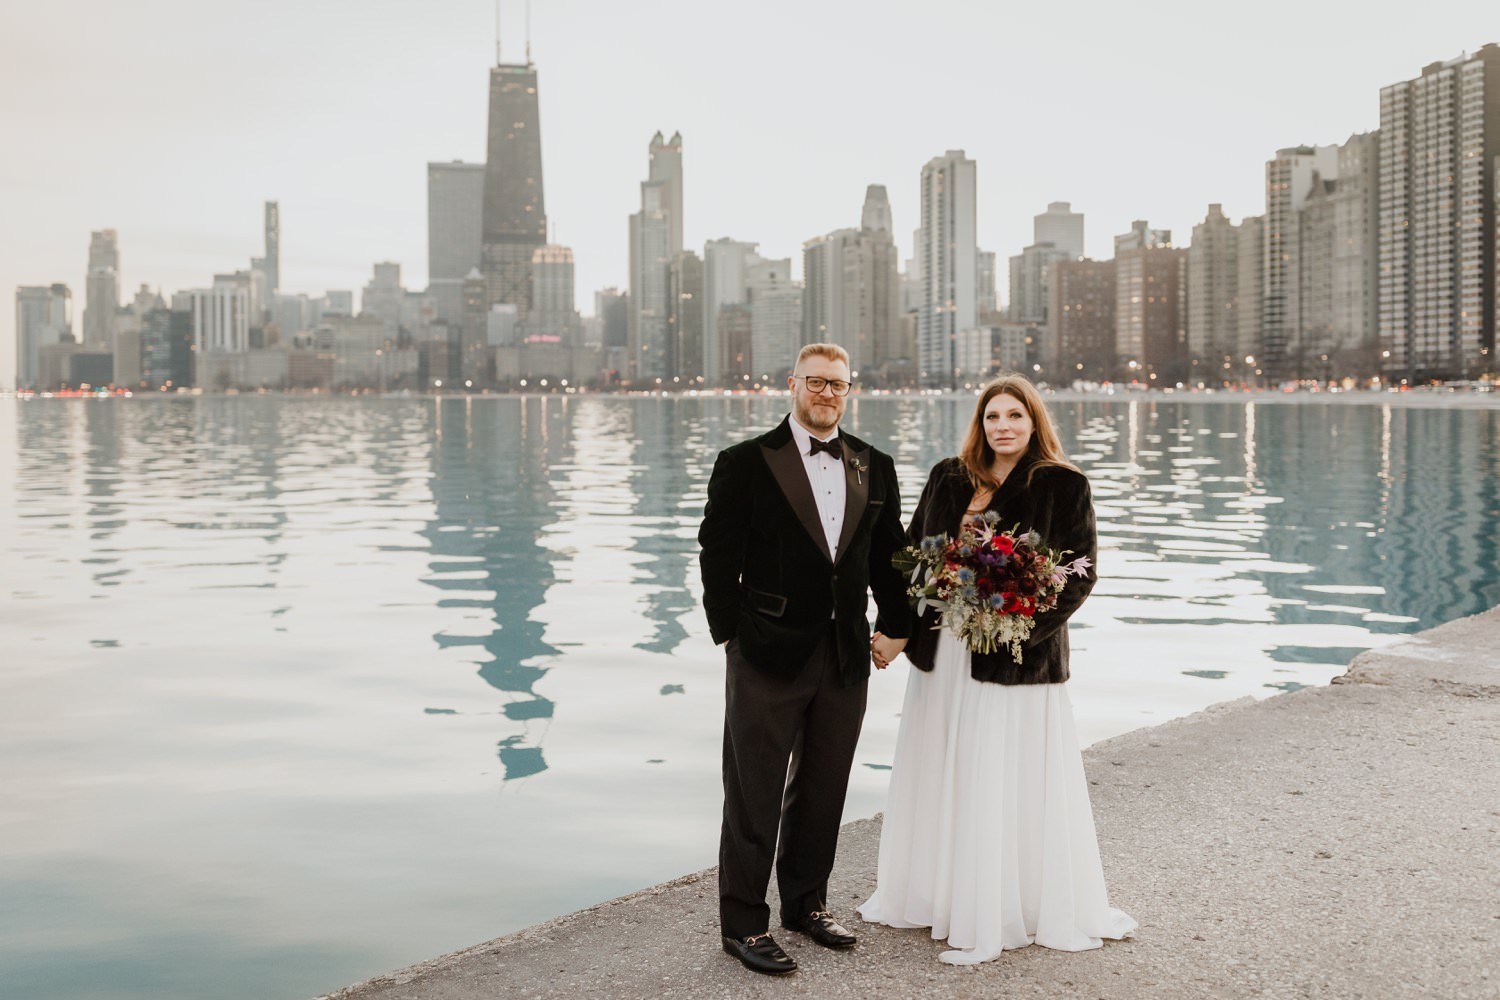 bride and groom photographed at Chicago's downtown lakefront during their elopement